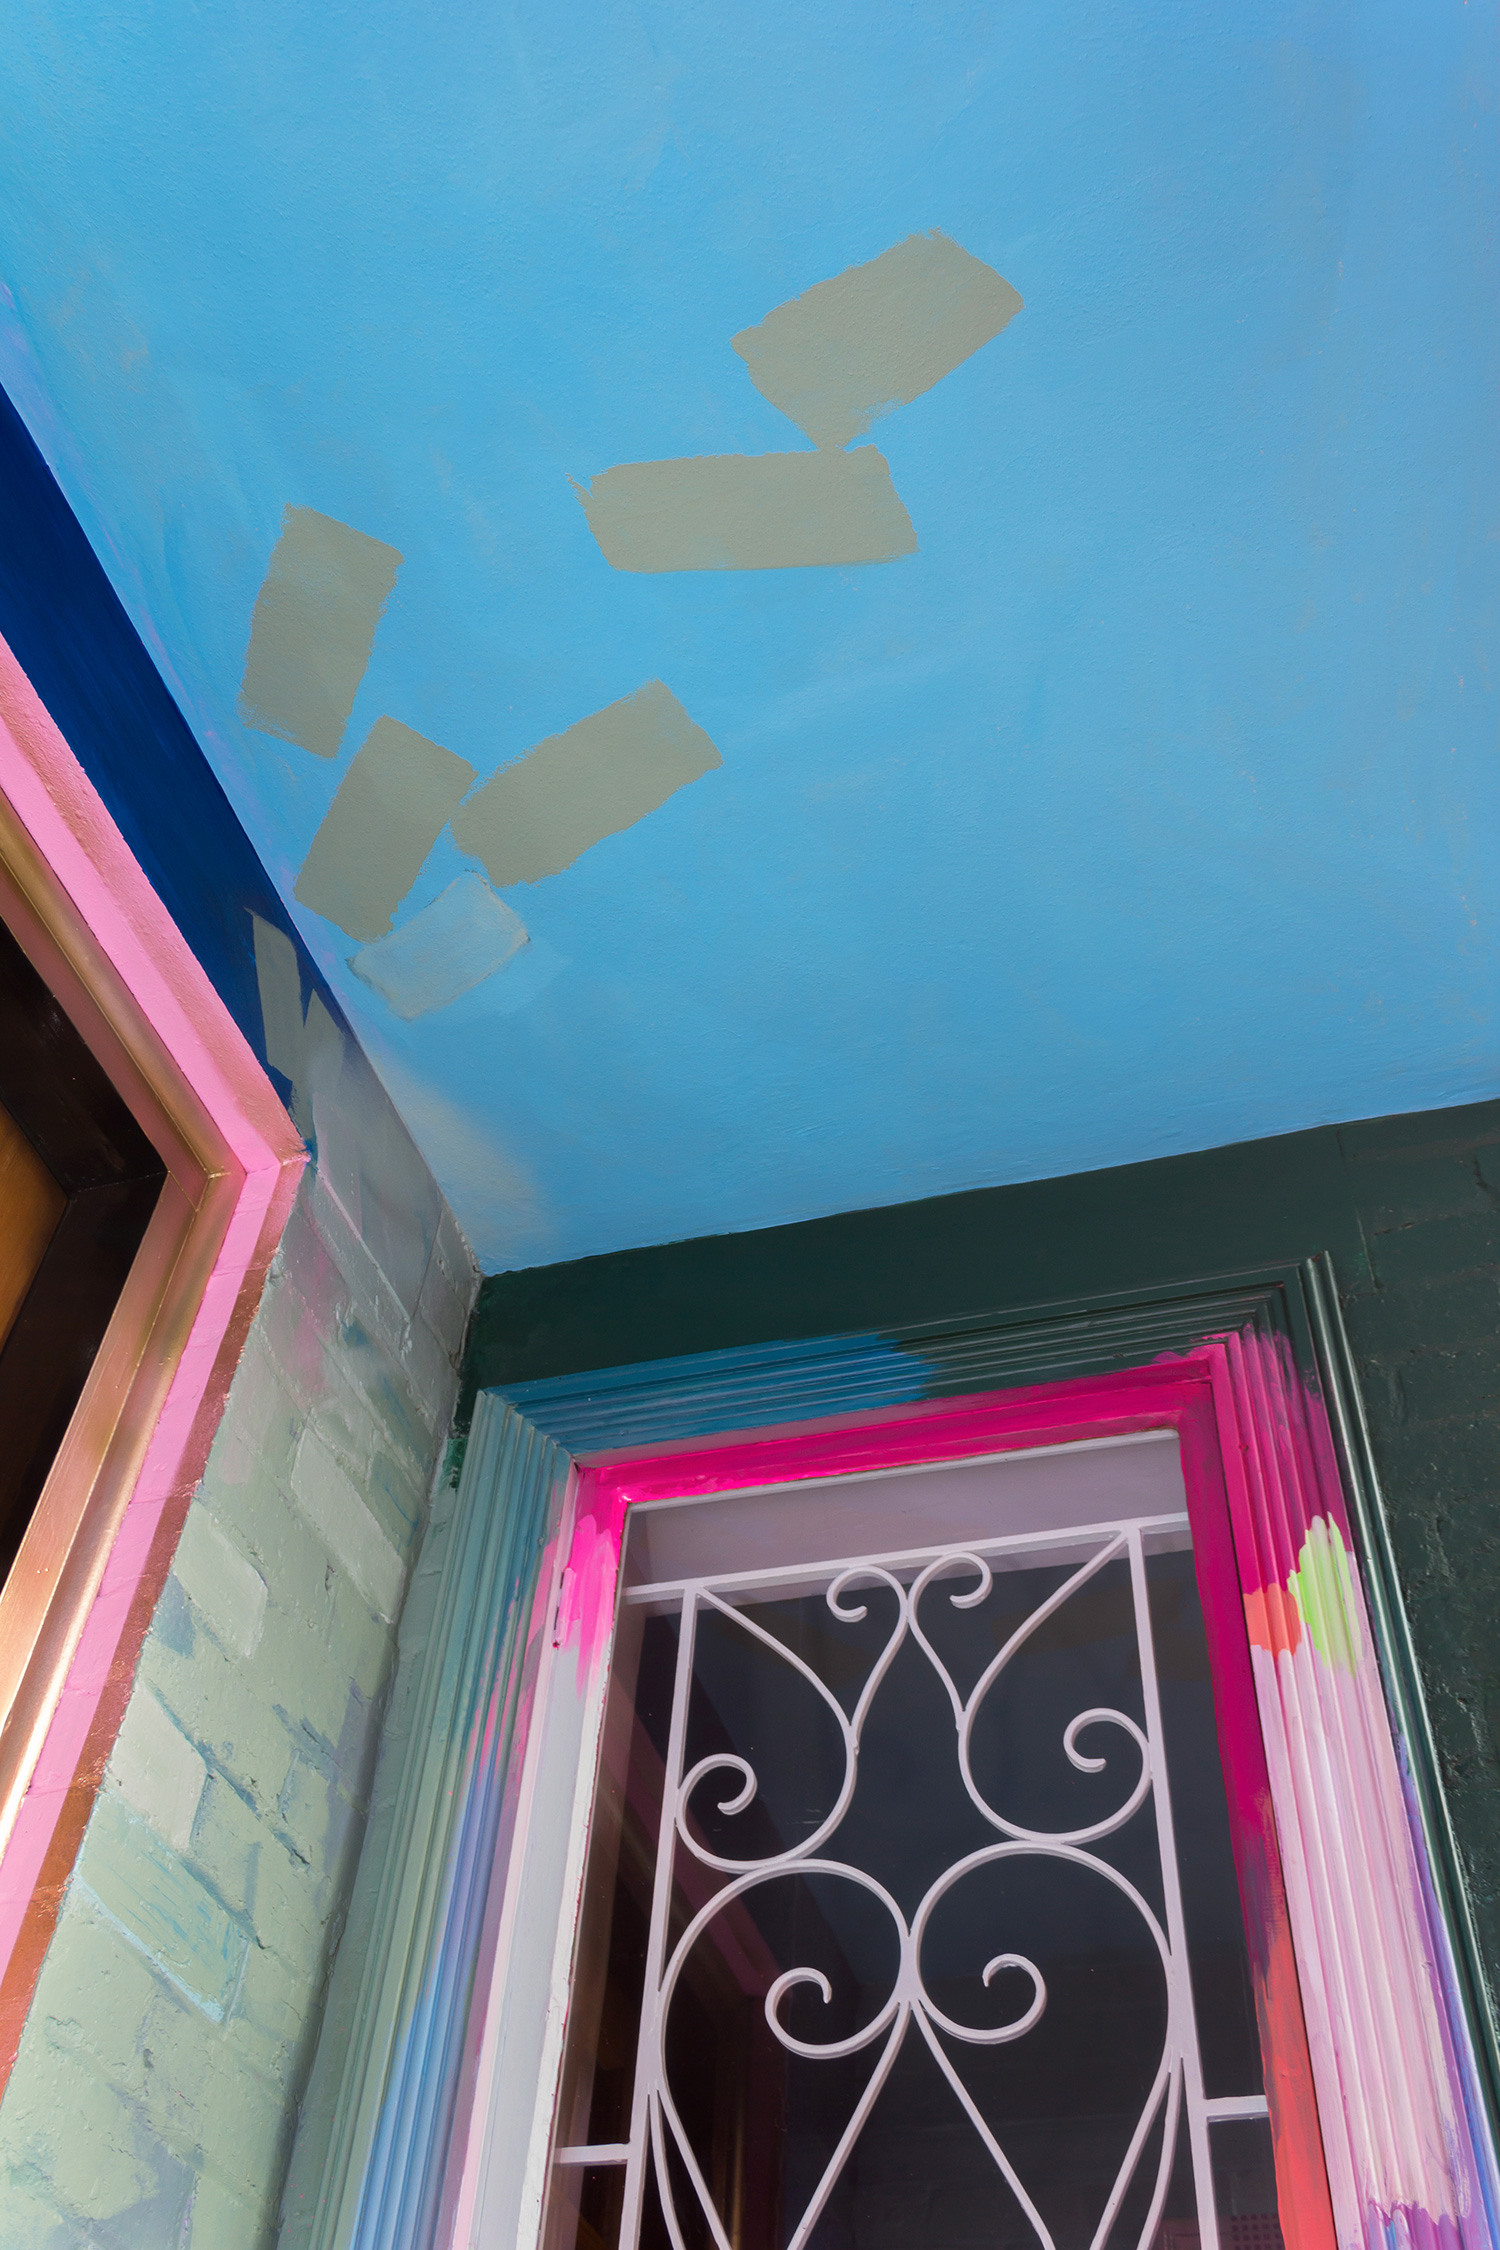 A residential home has been used as a giant art canvas, with a vibrant, abstract design painted on the bricks and window frames. The painted marks move across the walls and along the ceiling.